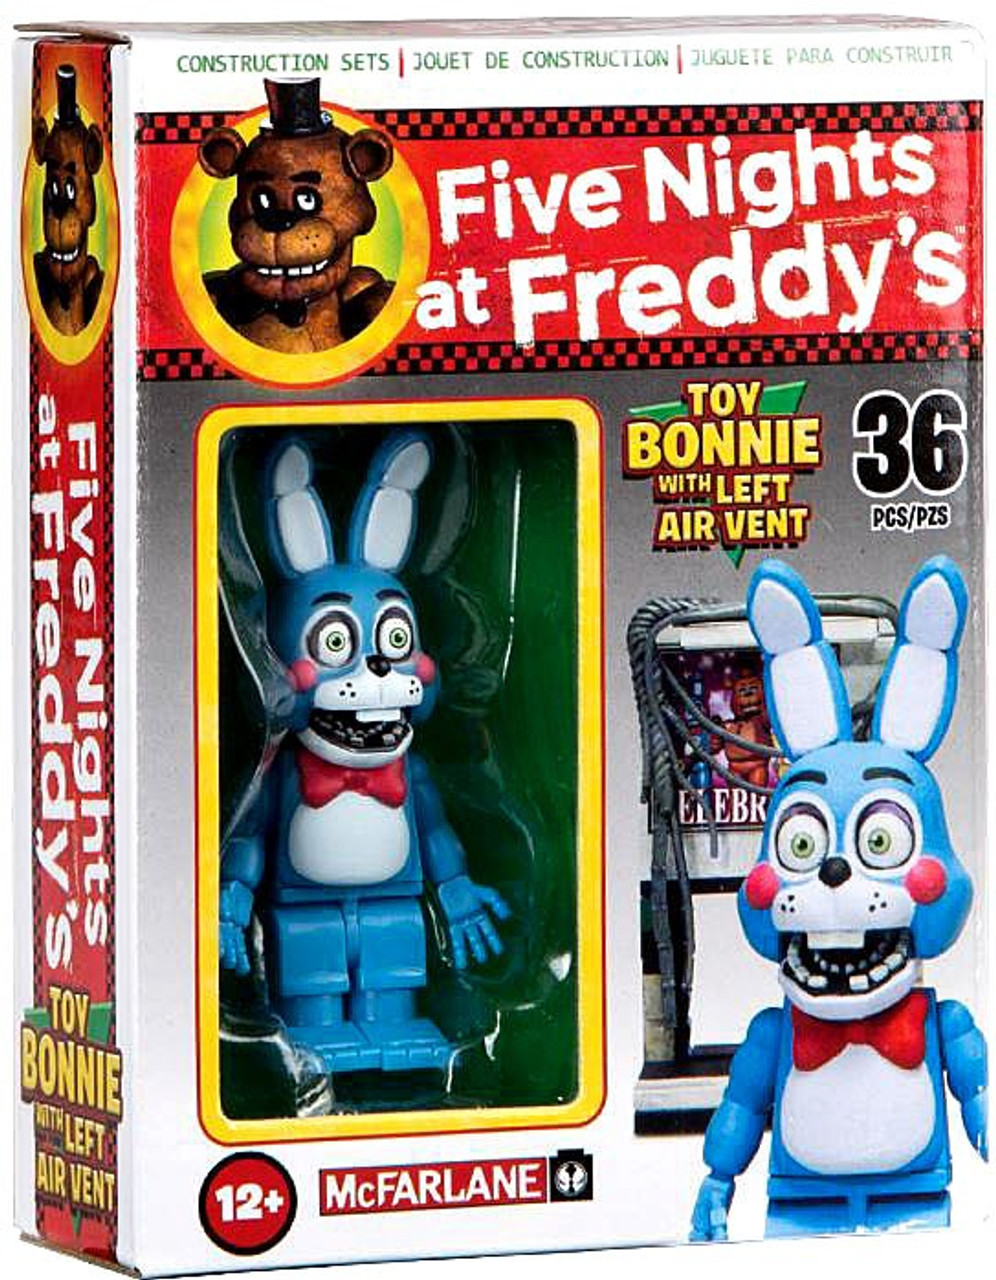 McFarlane Toys Five Nights at Freddys Toy Bonnie with Left